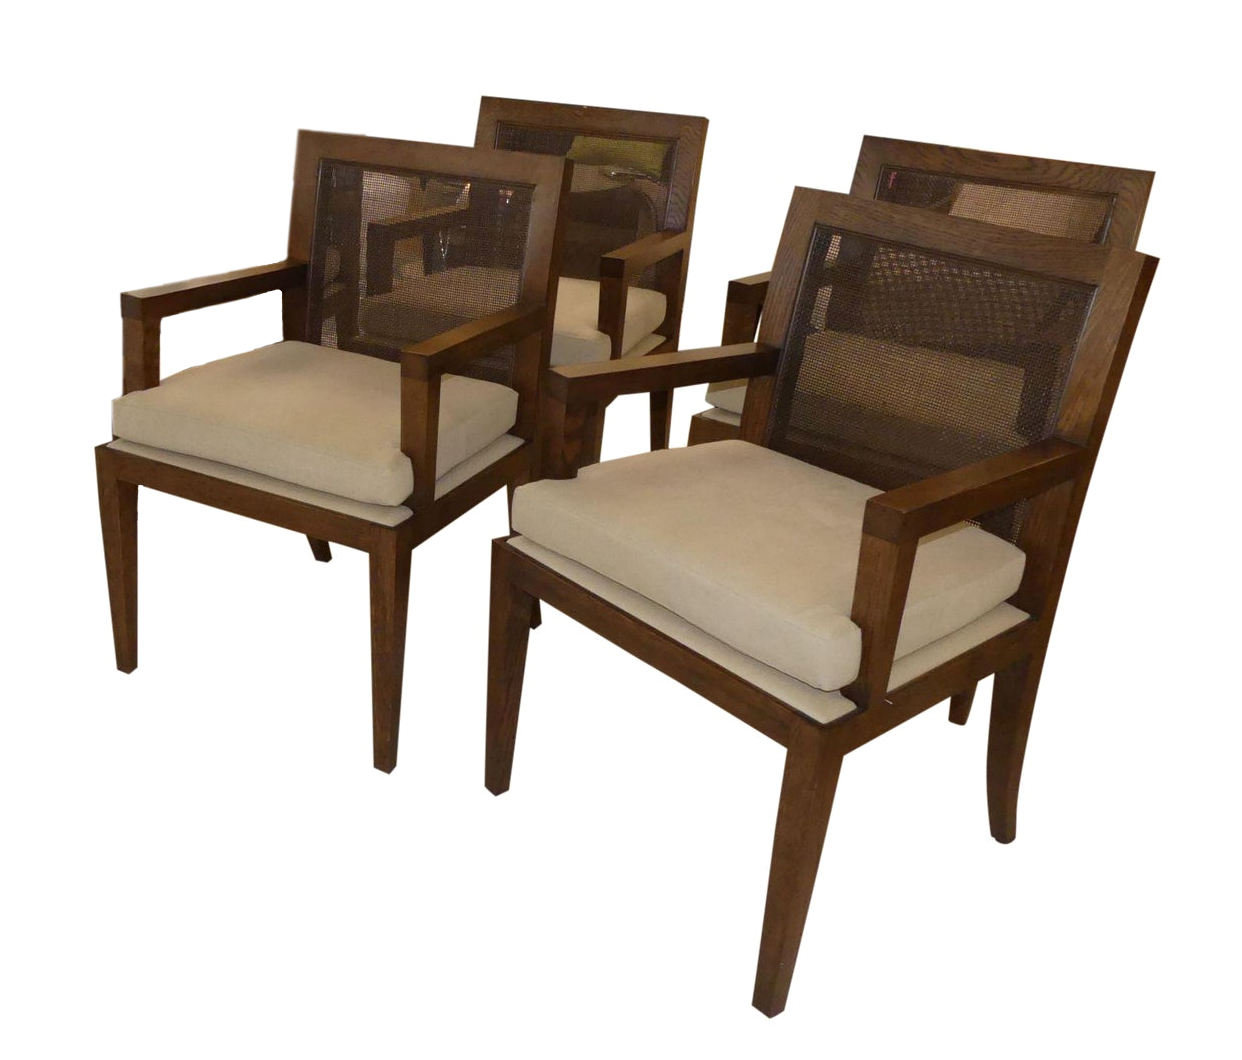 ON HOLD Set of 4 Baker Barbara Barry Caned Back Dining Chairs